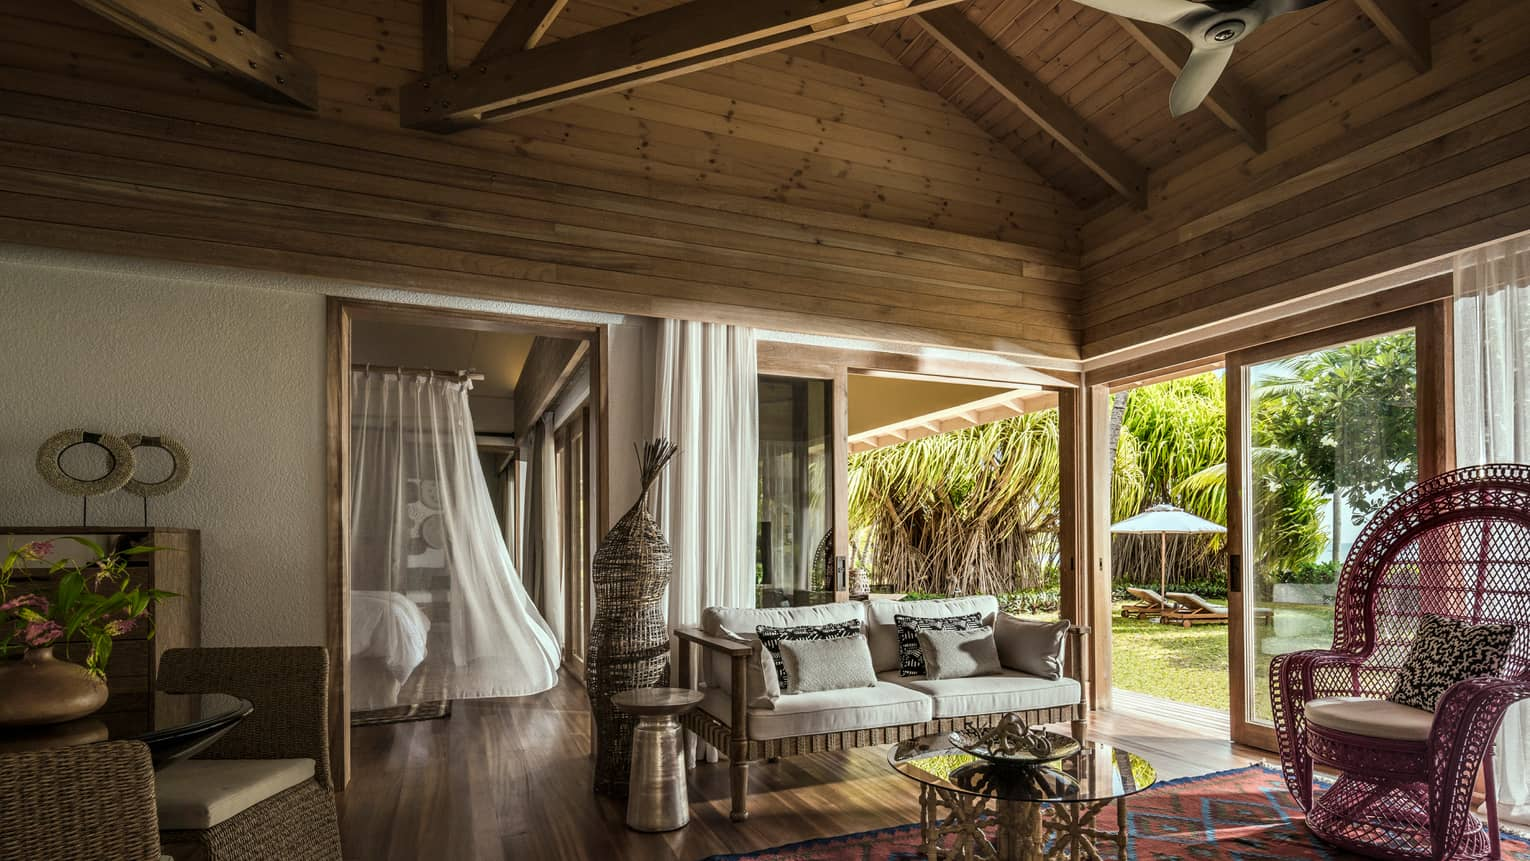 One-bedroom suite living room wicker furniture under wood beam roof, bed with white sheer canopy